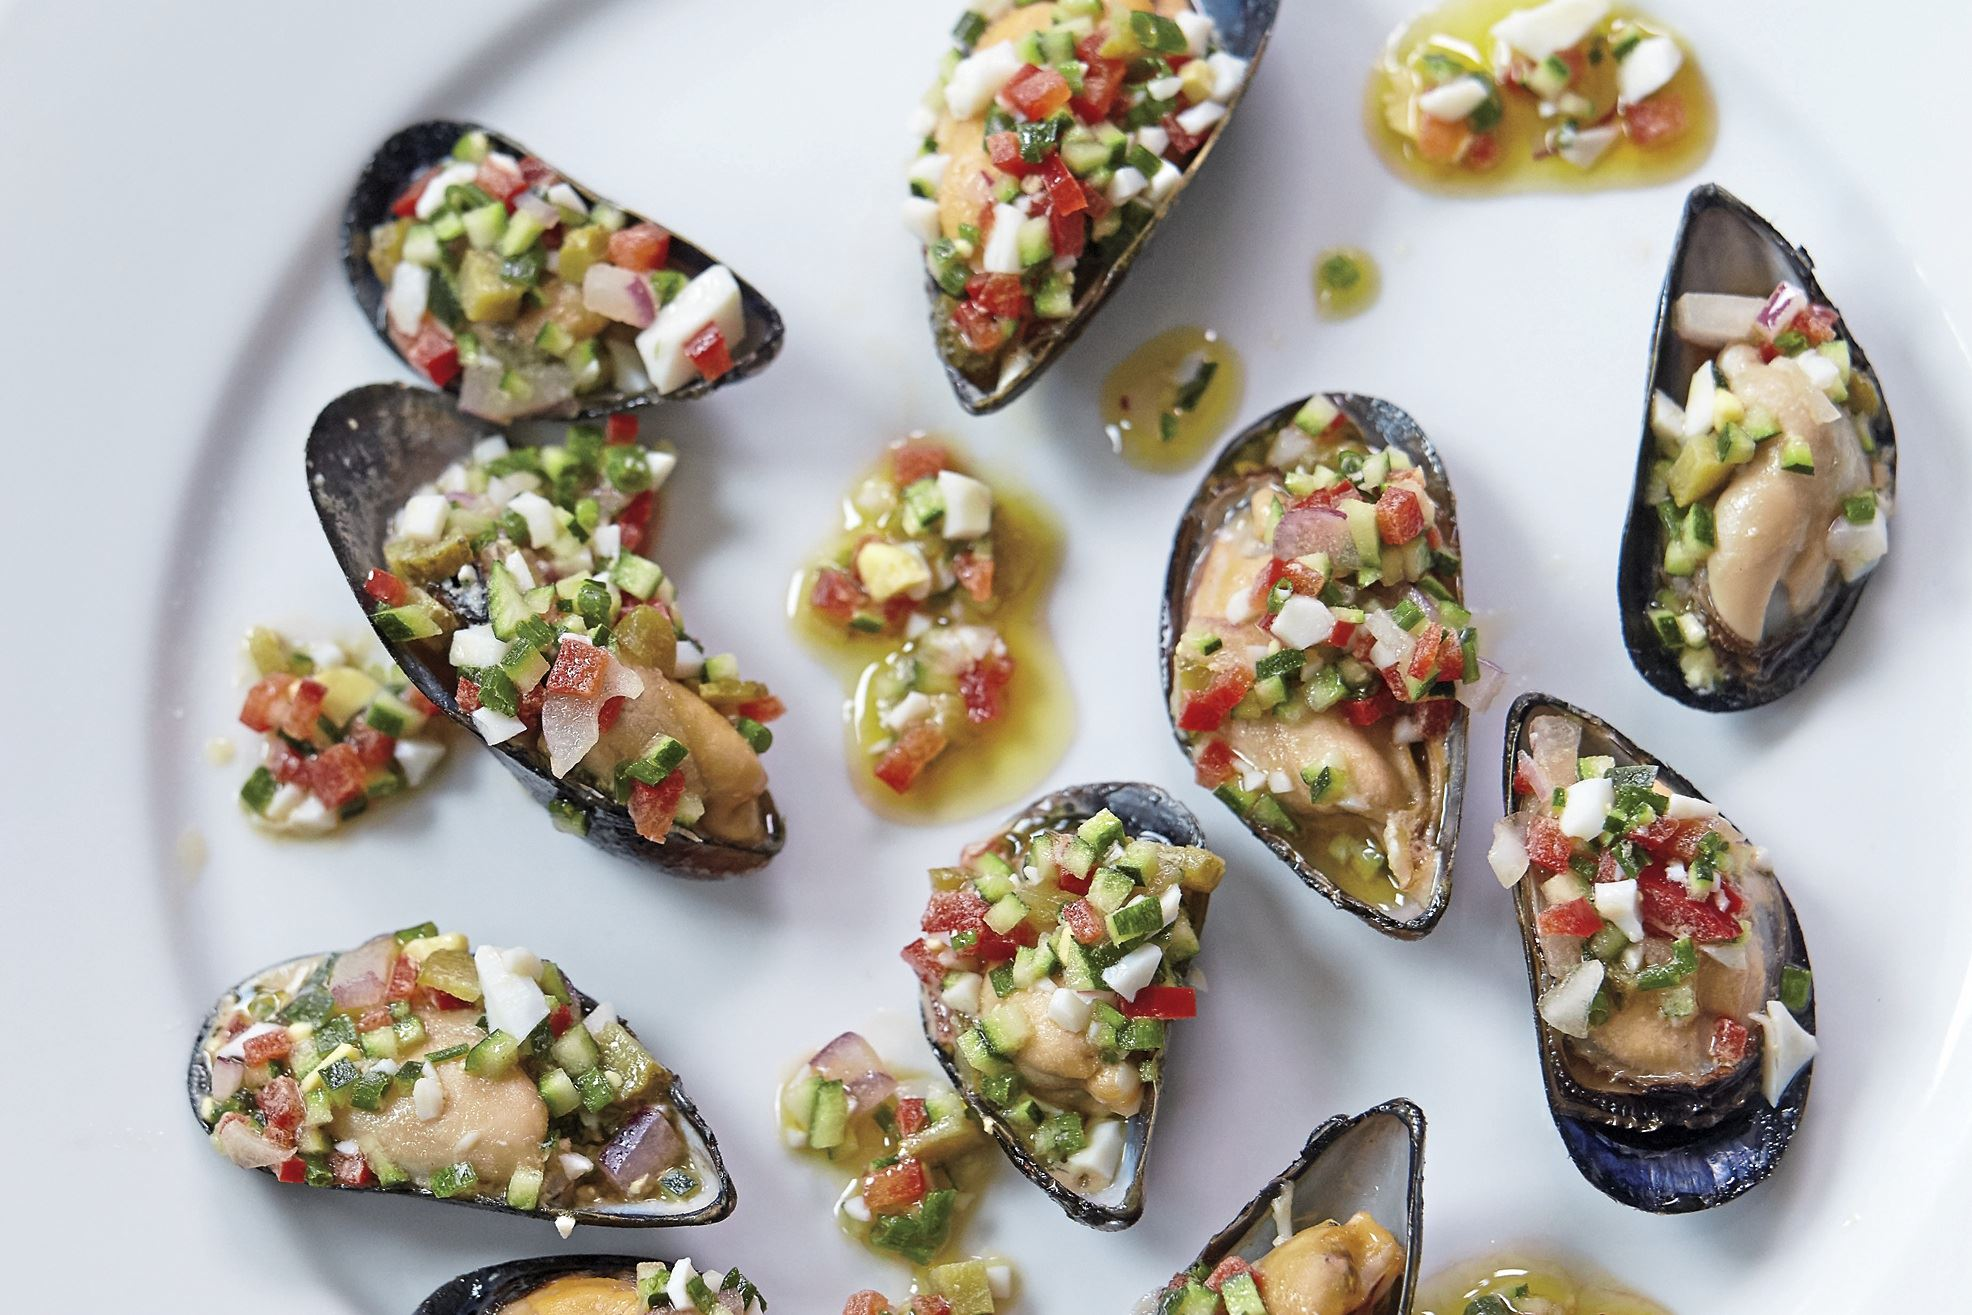 Mussels-2 Mussels with zucchini salsa verde. The salsa can also be served with roasted beef tenderloin, grilled chicken or roasted eggplant.